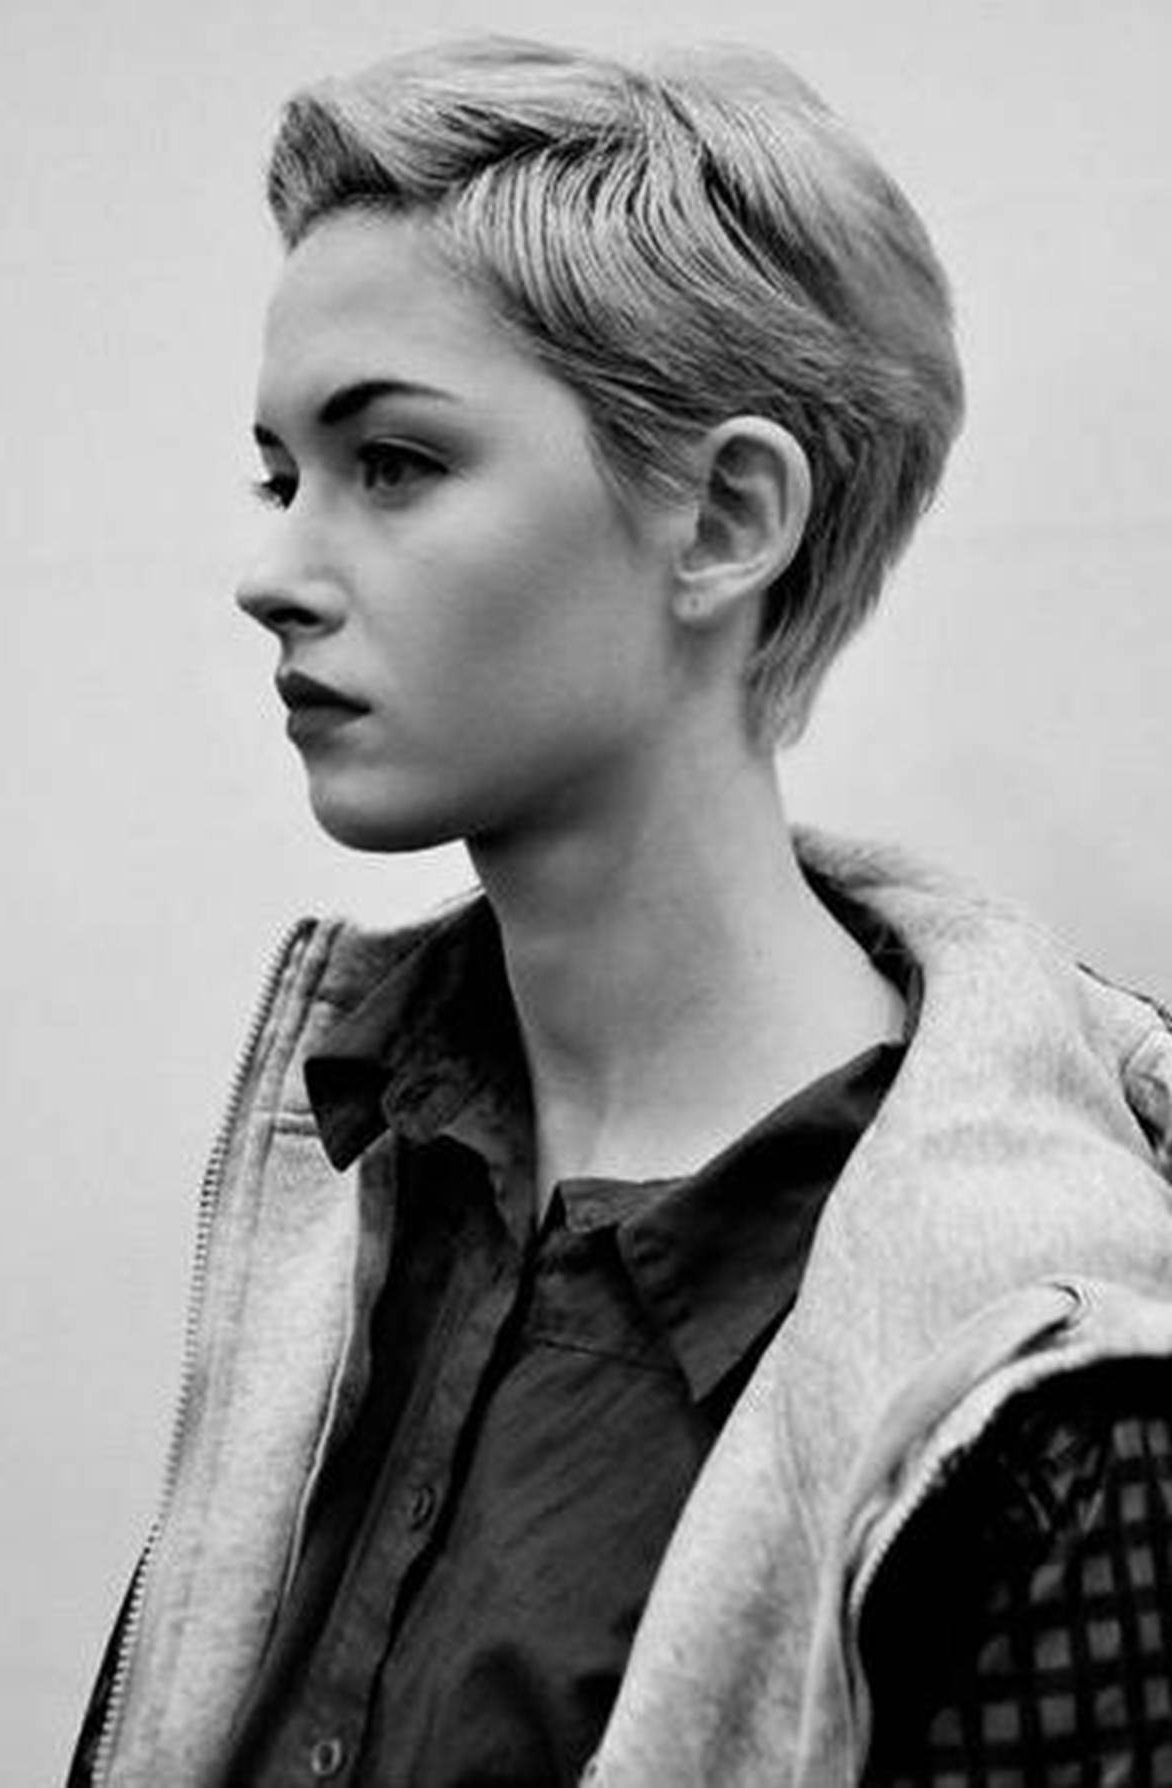 Mesmerizing Half Shaved Hairstyles Short Hair Also Shaved Haircuts Inside Part Shaved Short Hairstyles (View 11 of 25)